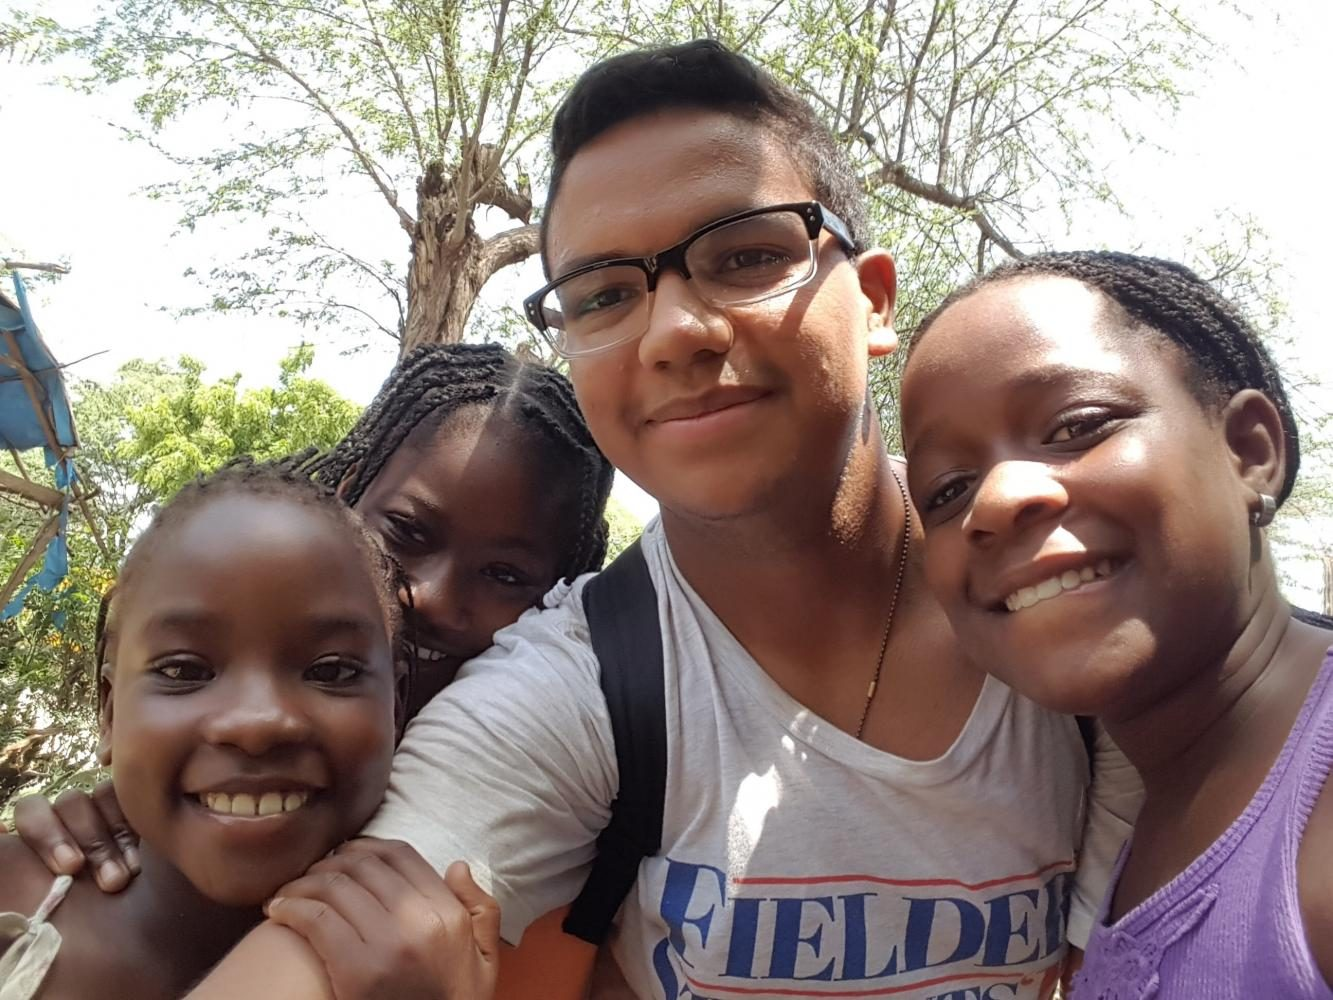 Junior Helps in Haiti on Mission Trip